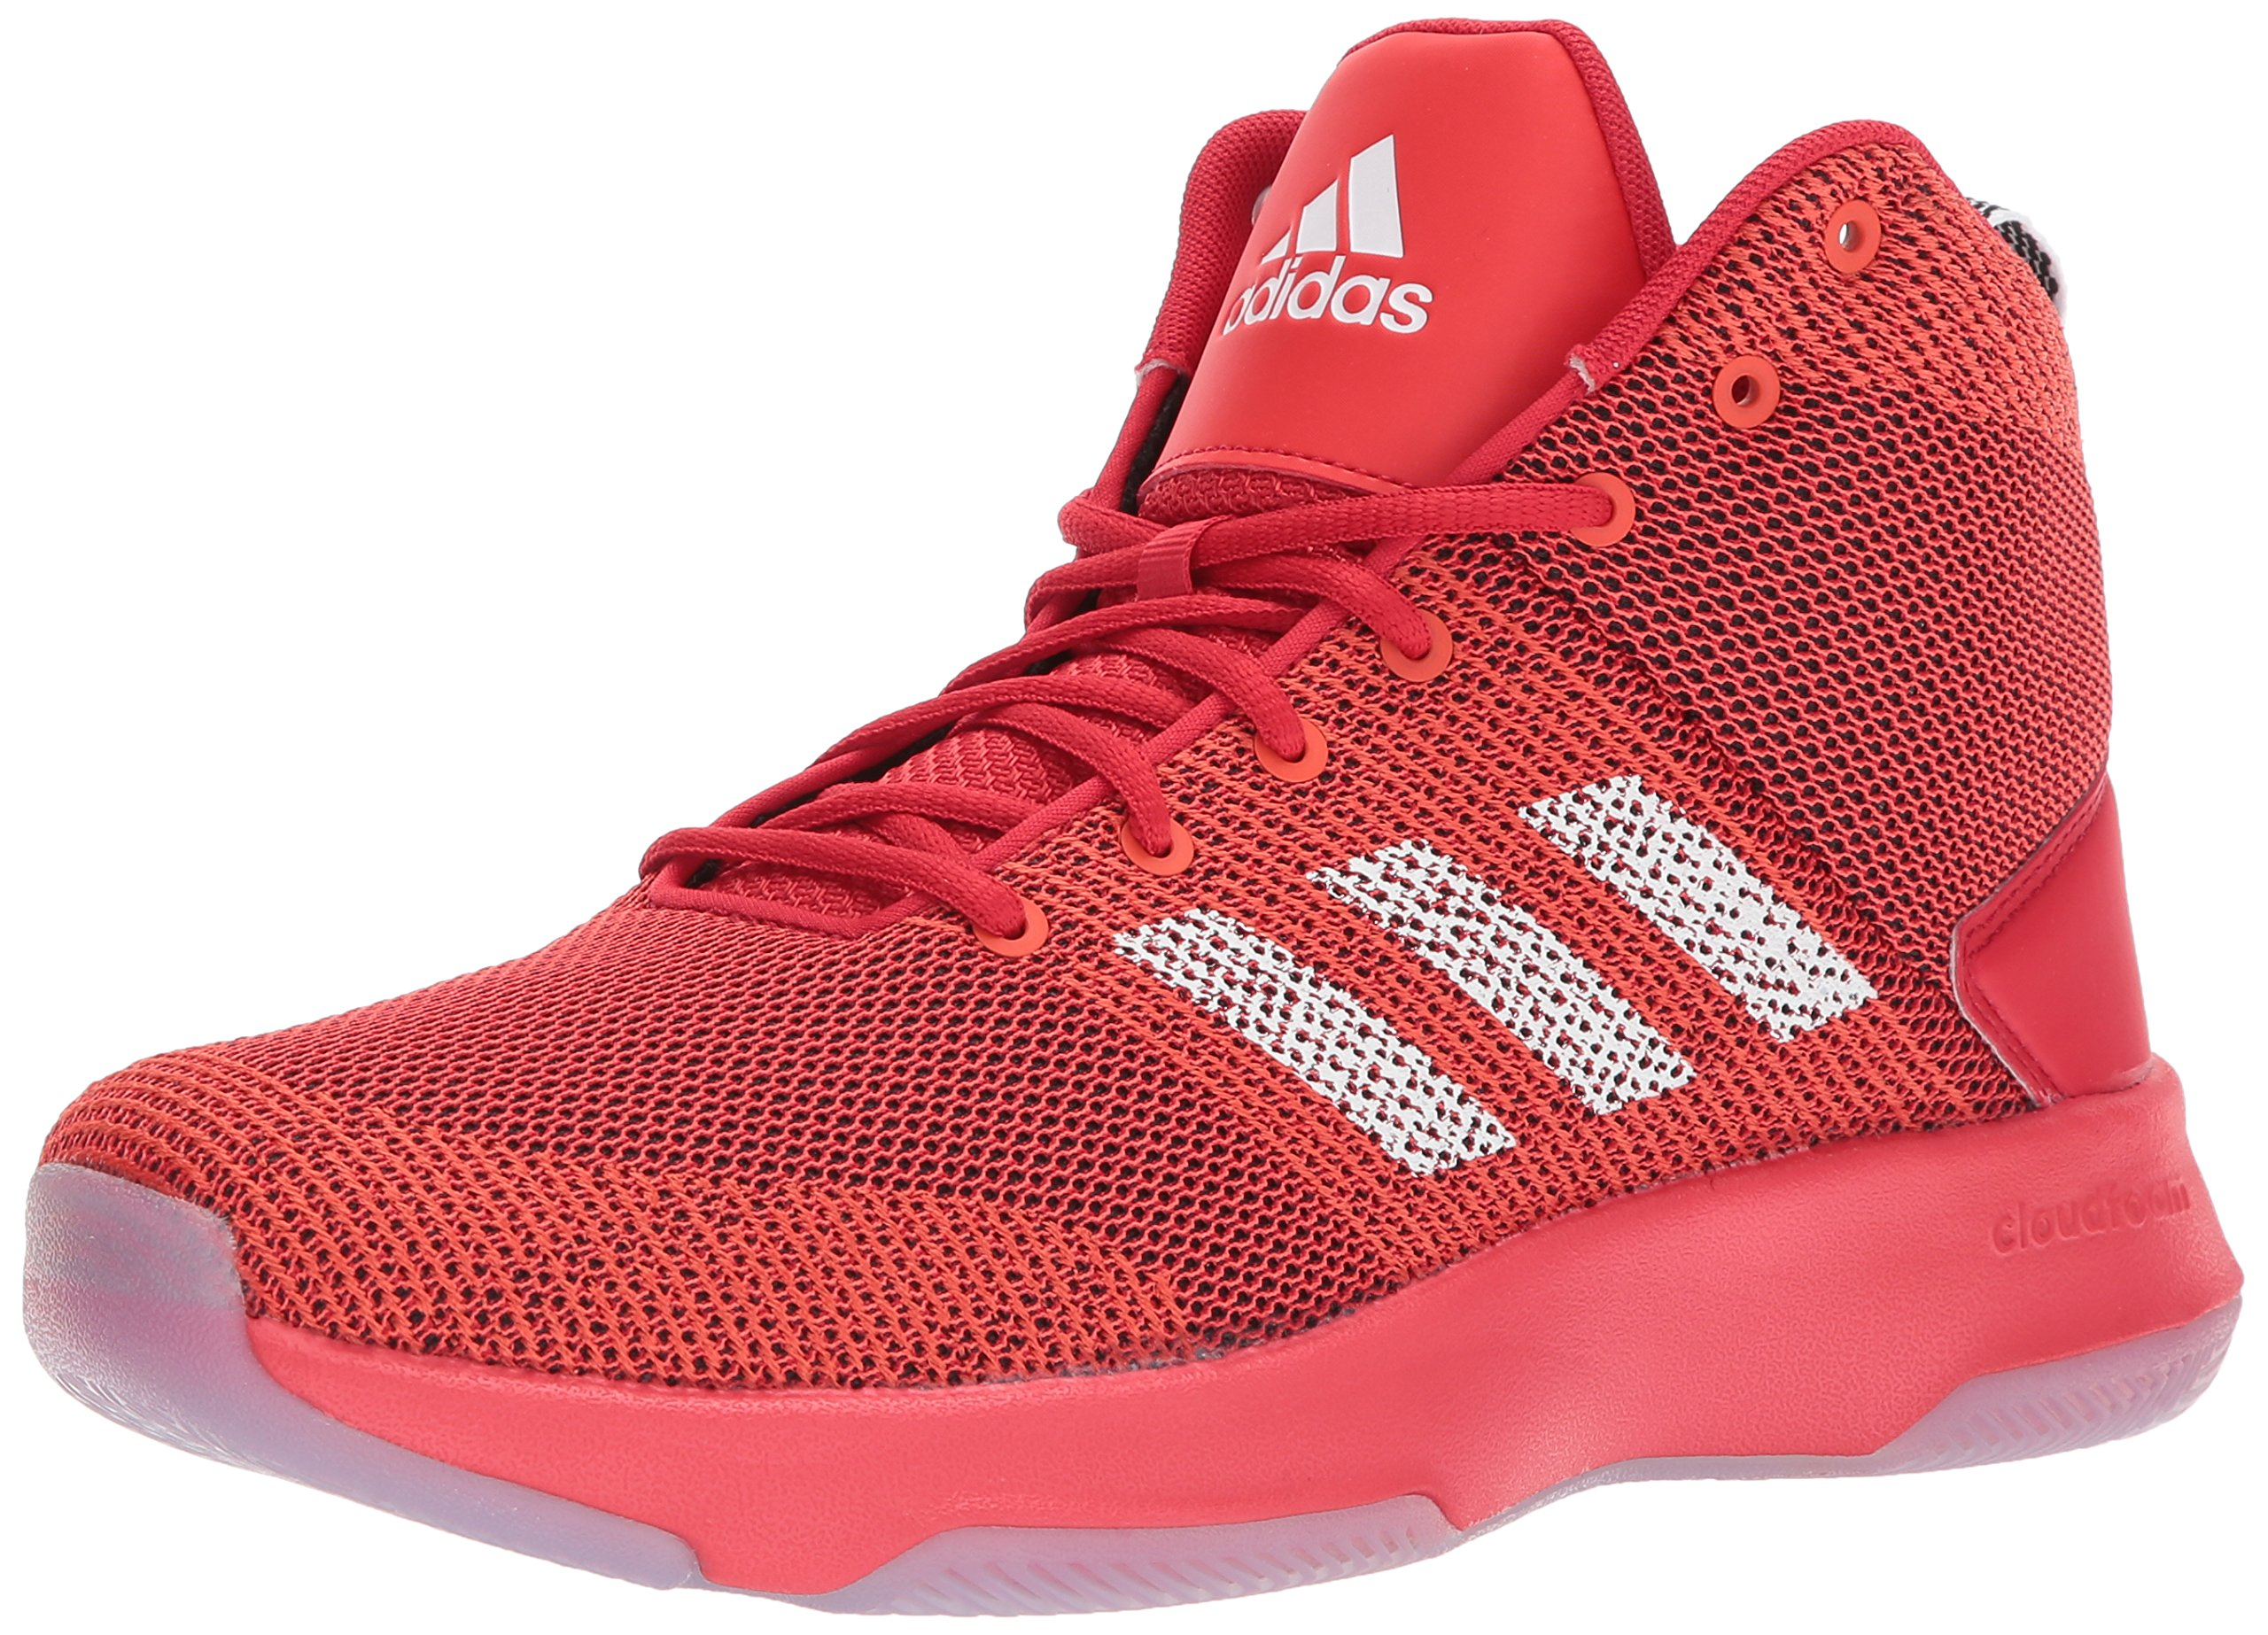 adidas Neo Men's CF Executor Mid Basketball-Shoes, Scarlet/White/CORE RED, 10.5 Medium US by adidas